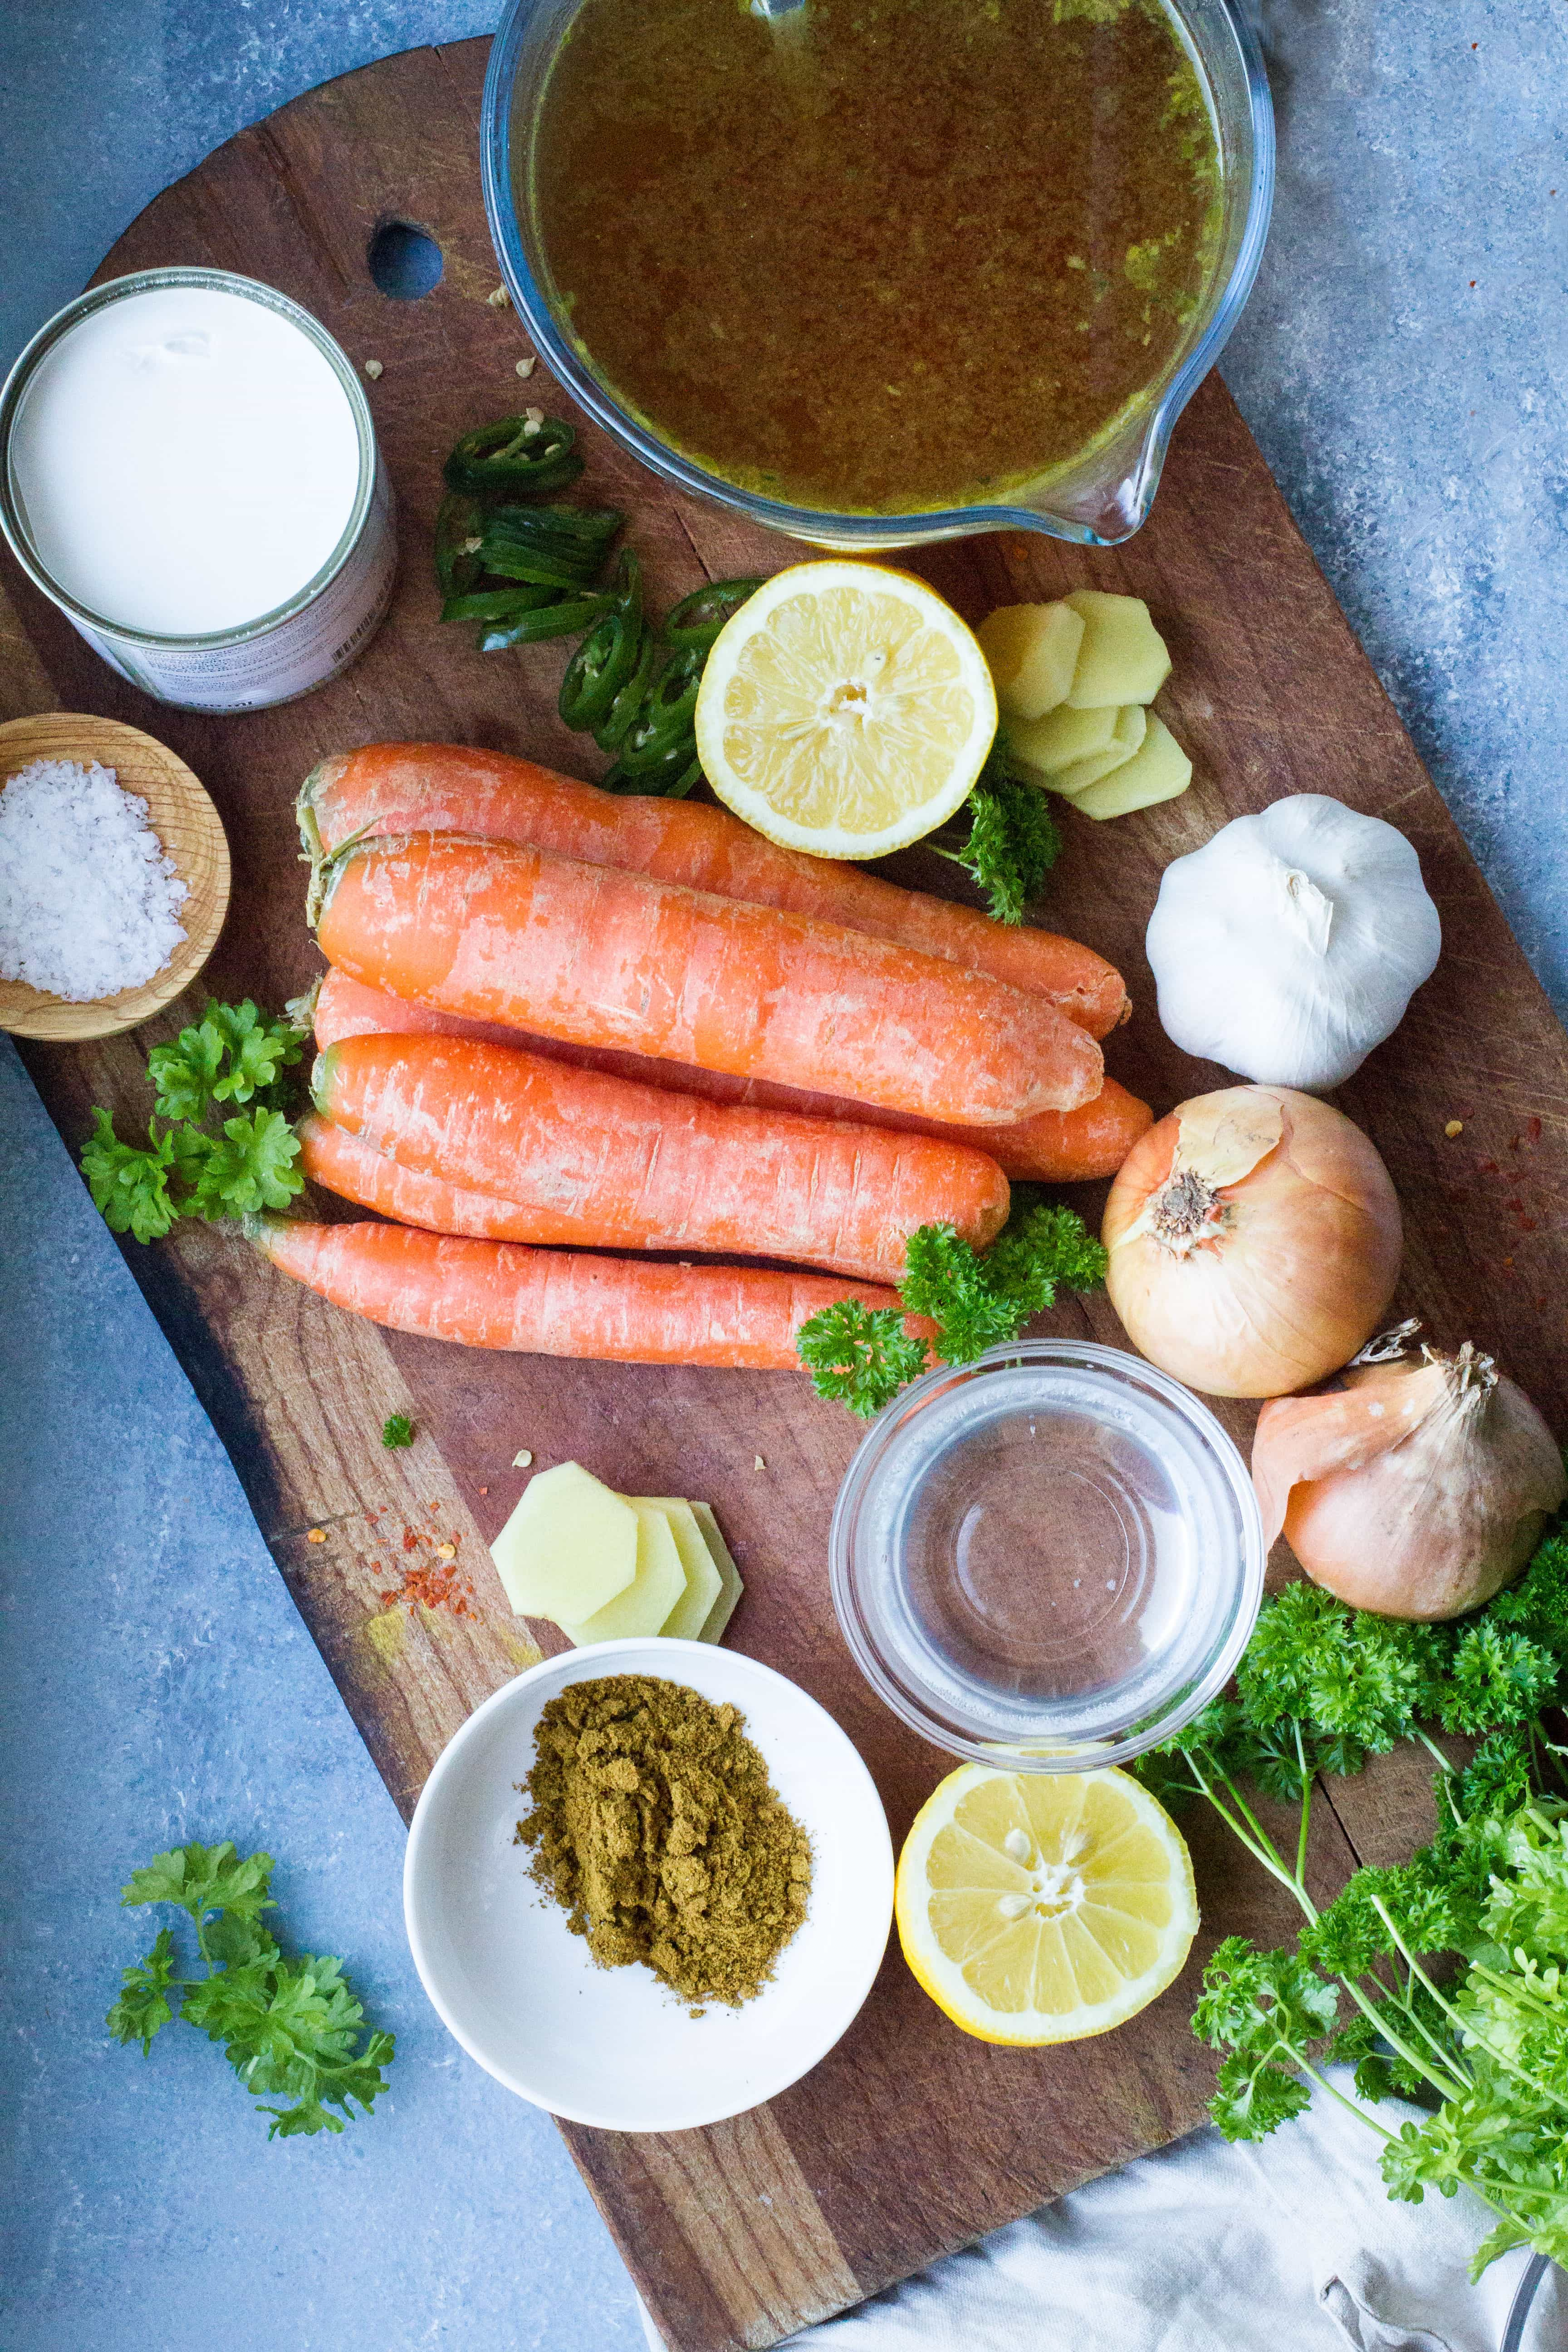 Ingredients to make curry coconut carrot soup.